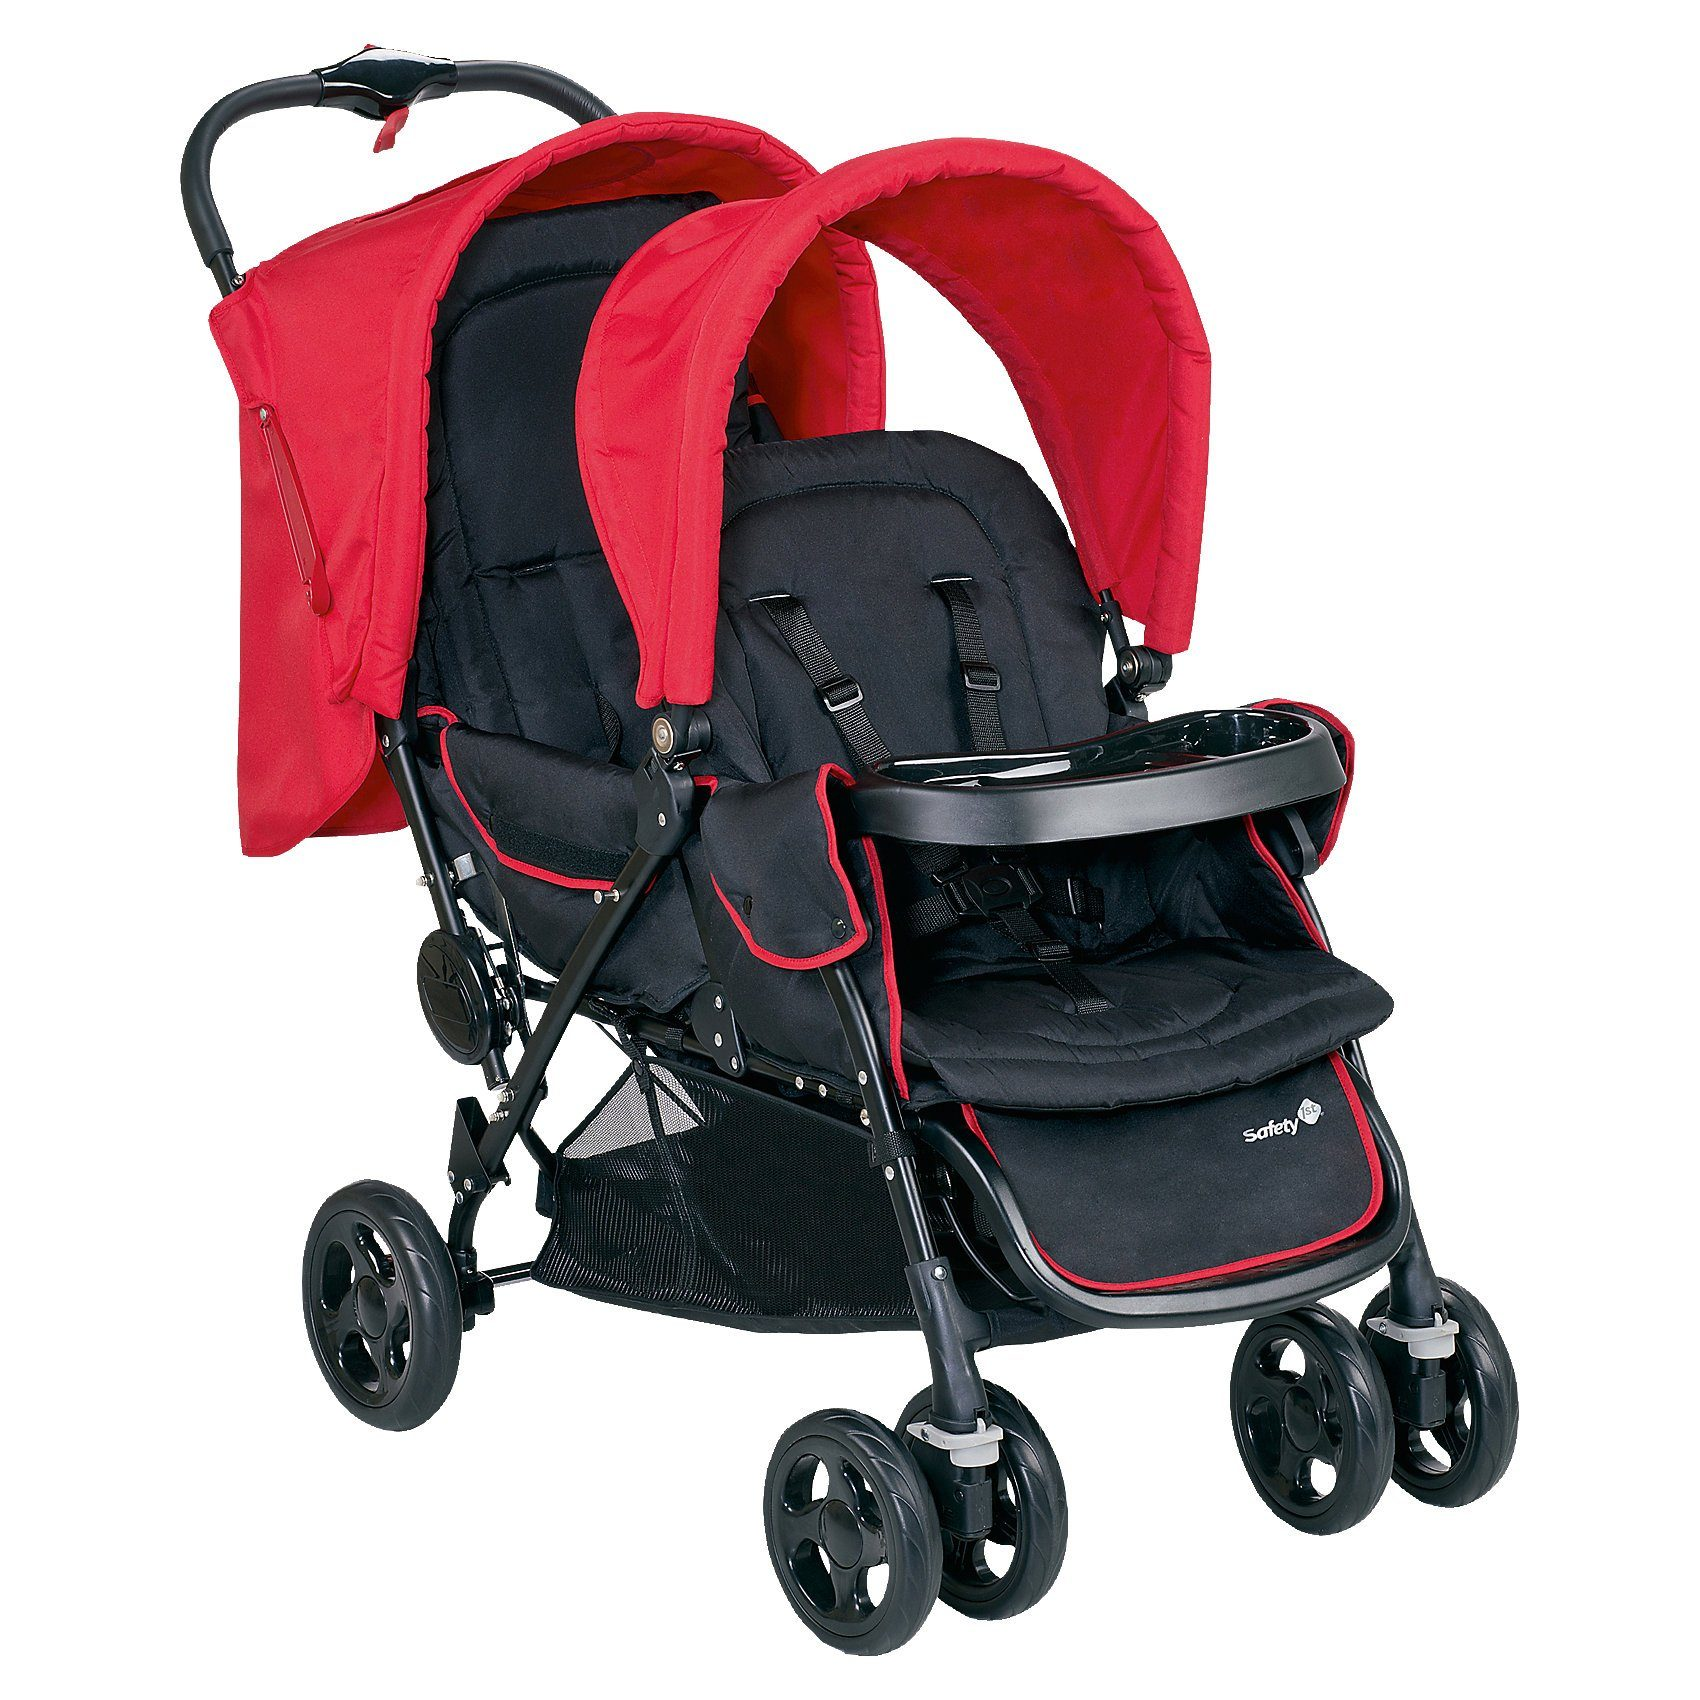 Safety 1st Geschwisterwagen Duodeal, Plain Red, 2017